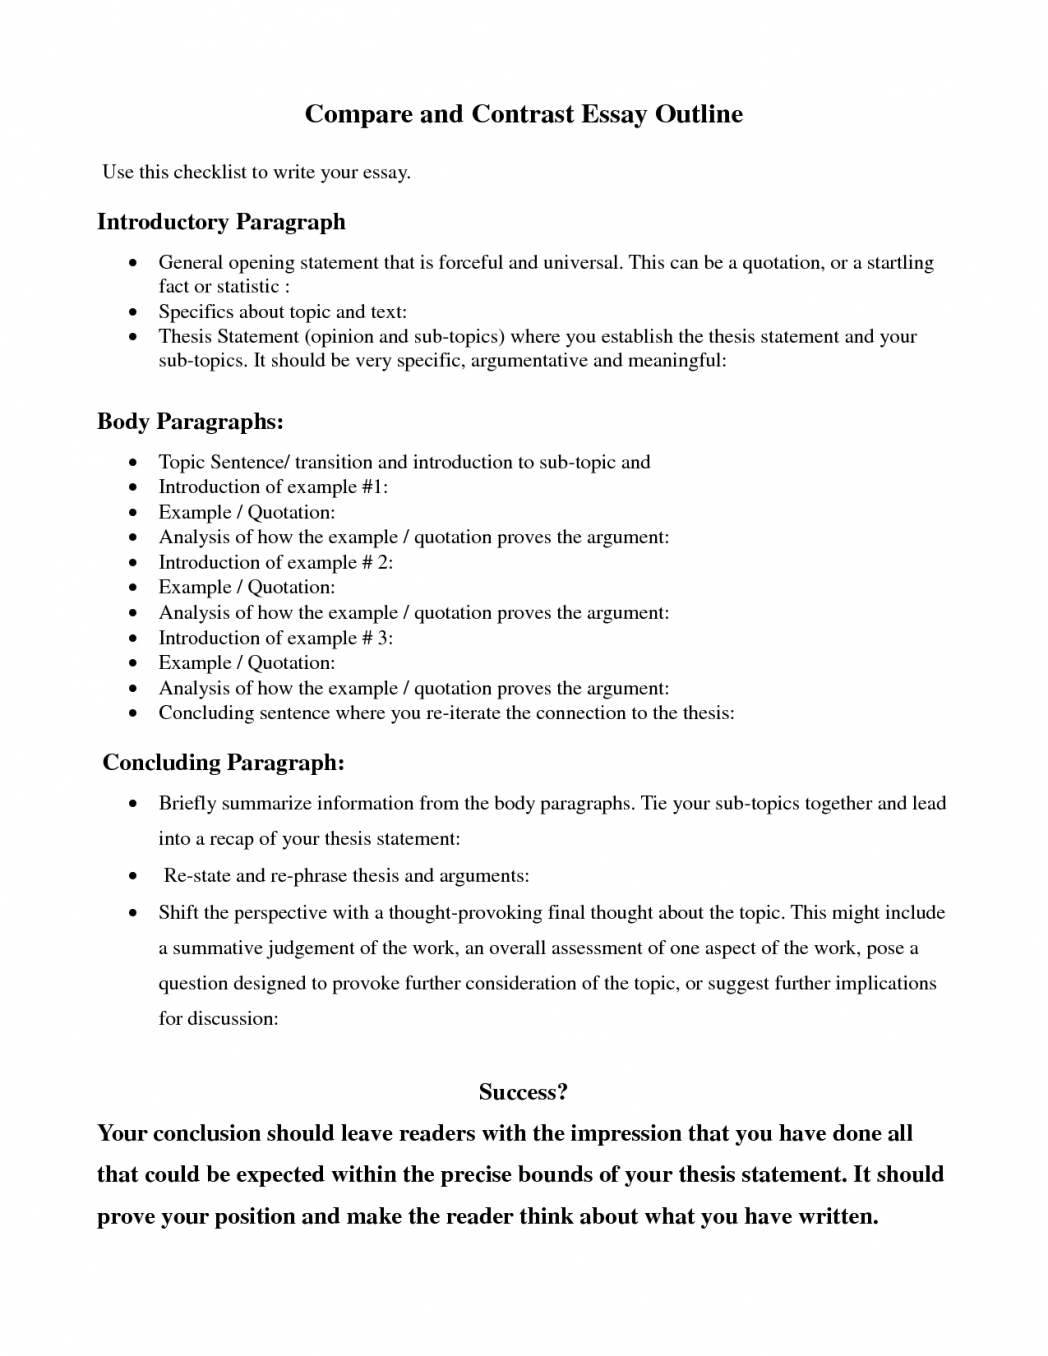 008 Essays About Success Writing Comparison Essay How To Write Better Amazon Thesis Statement For Compare And Contrast Template Qak The Guardian In English Book Reddit By Bryan Greetham Sensational On A Successful Person Is Someone Who Rich Life Man's Final Goal Secret Of Full